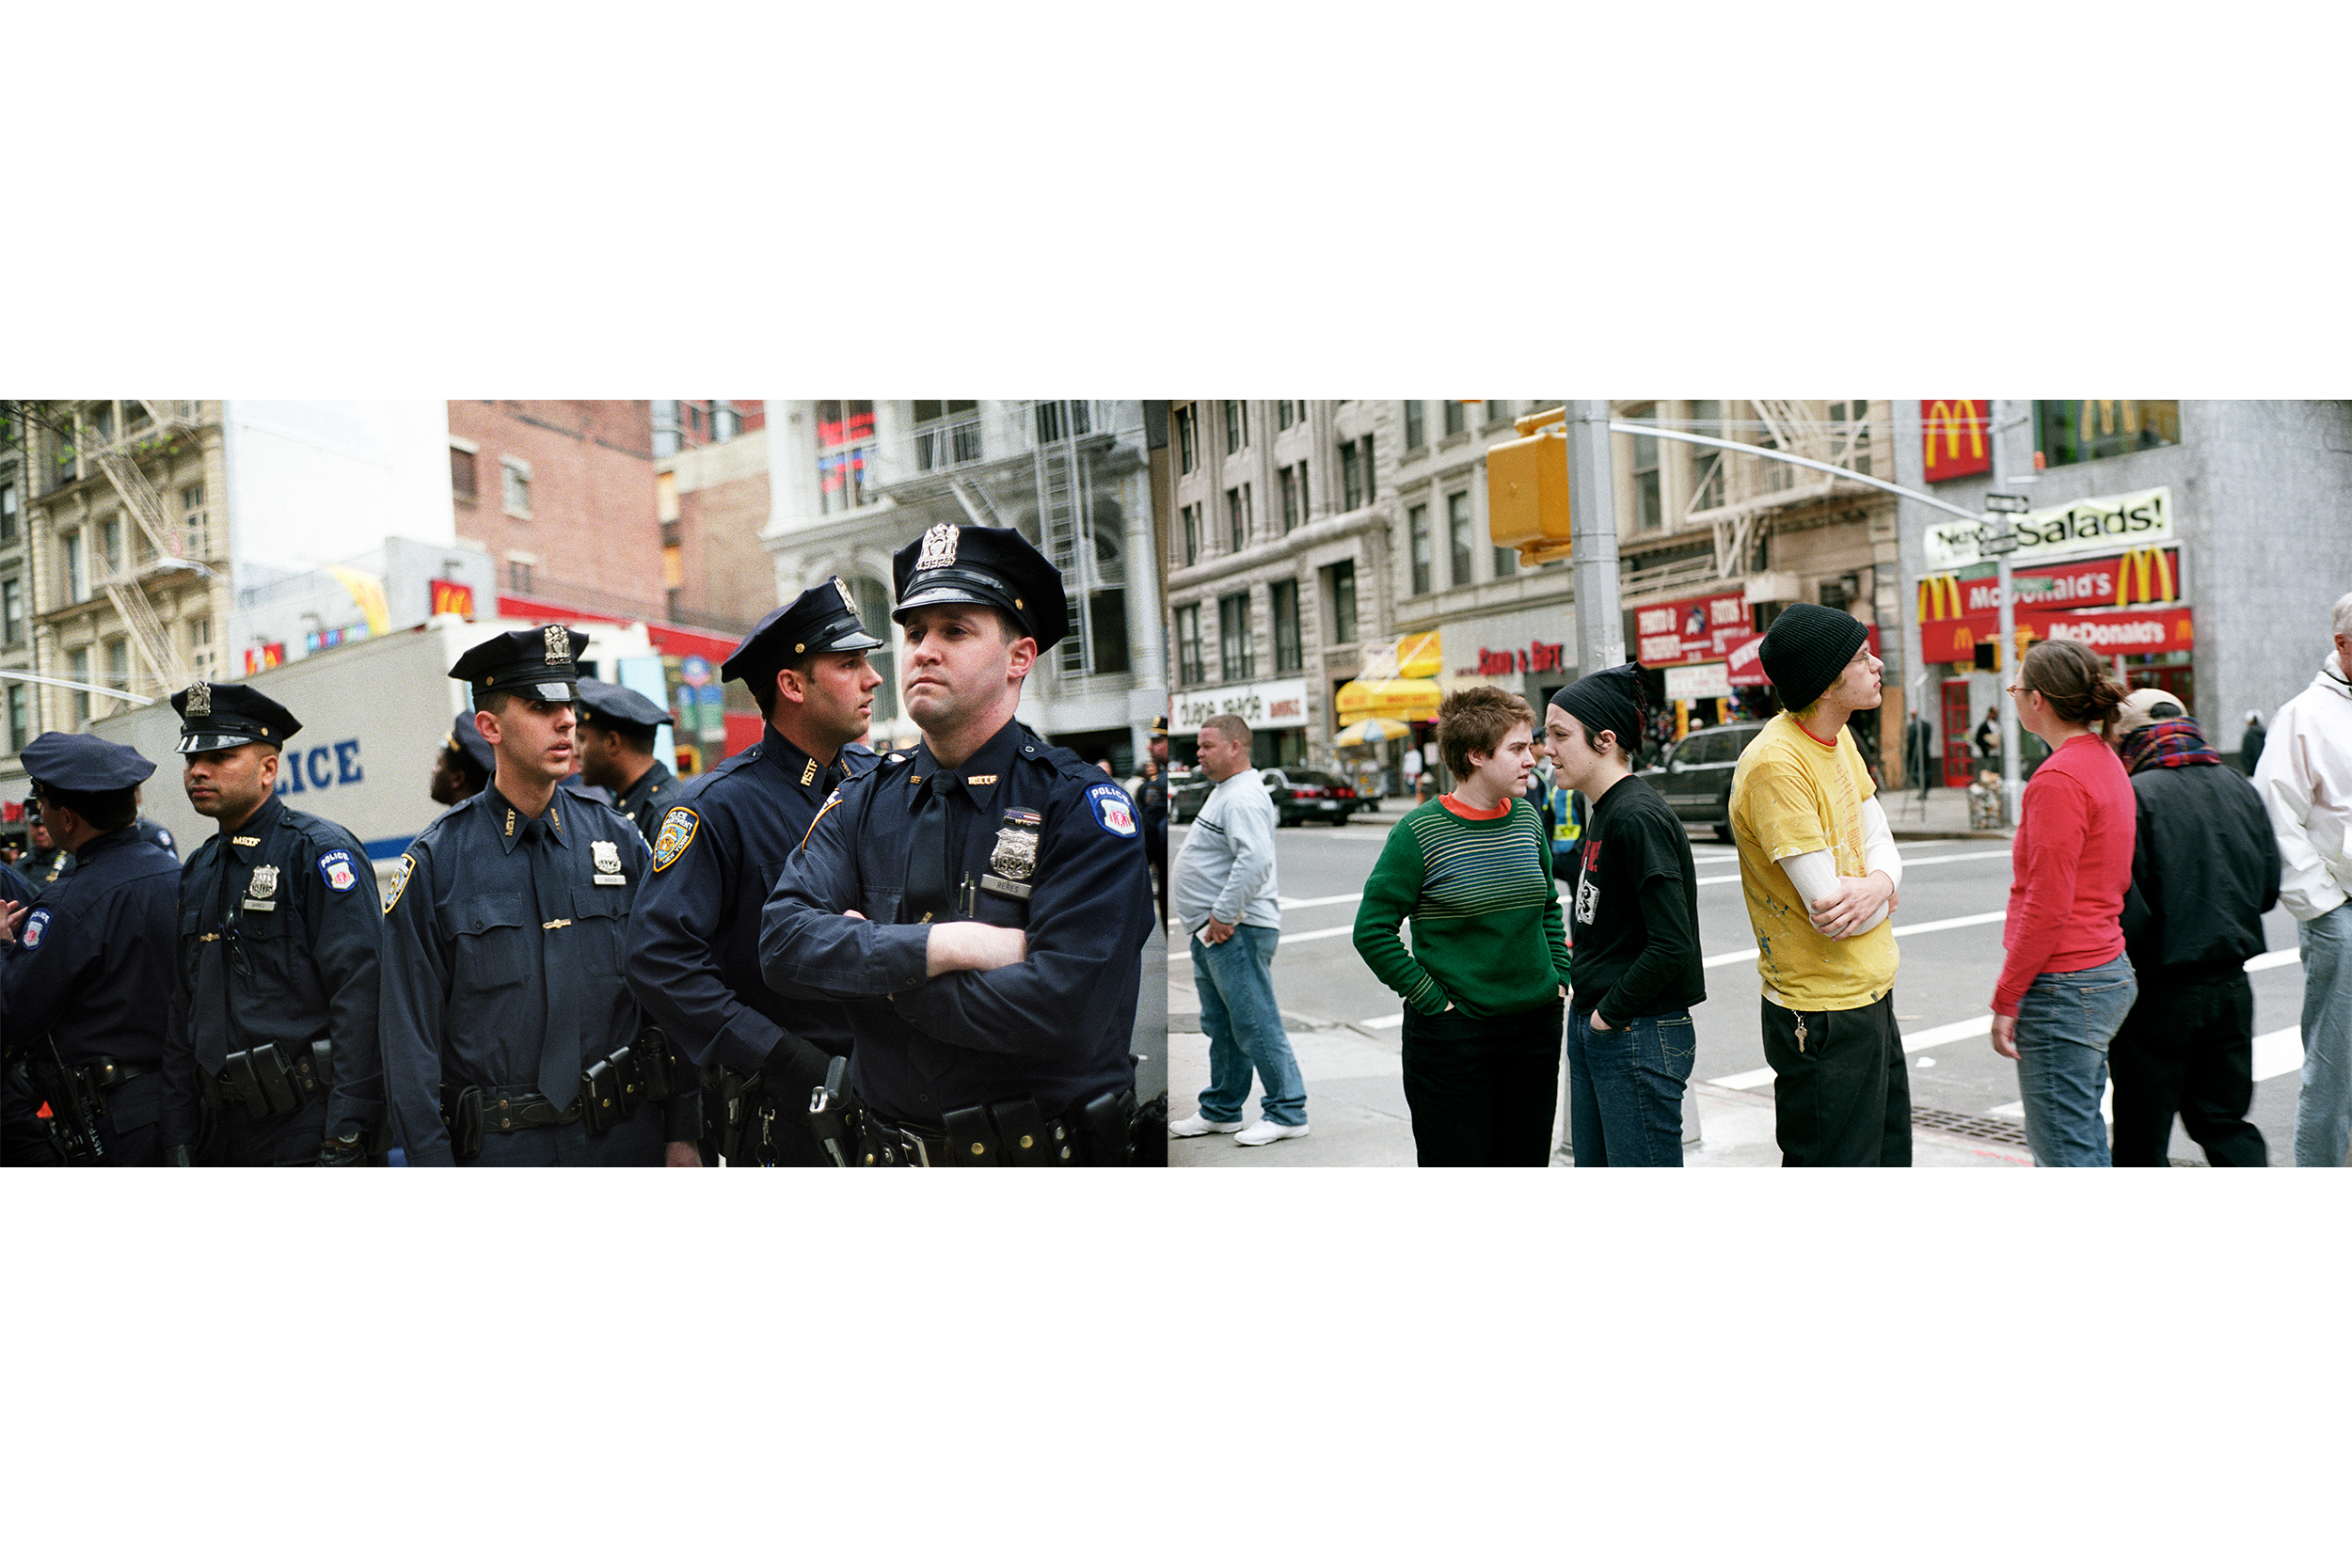 Cops and Protesters, Lower Manhattan